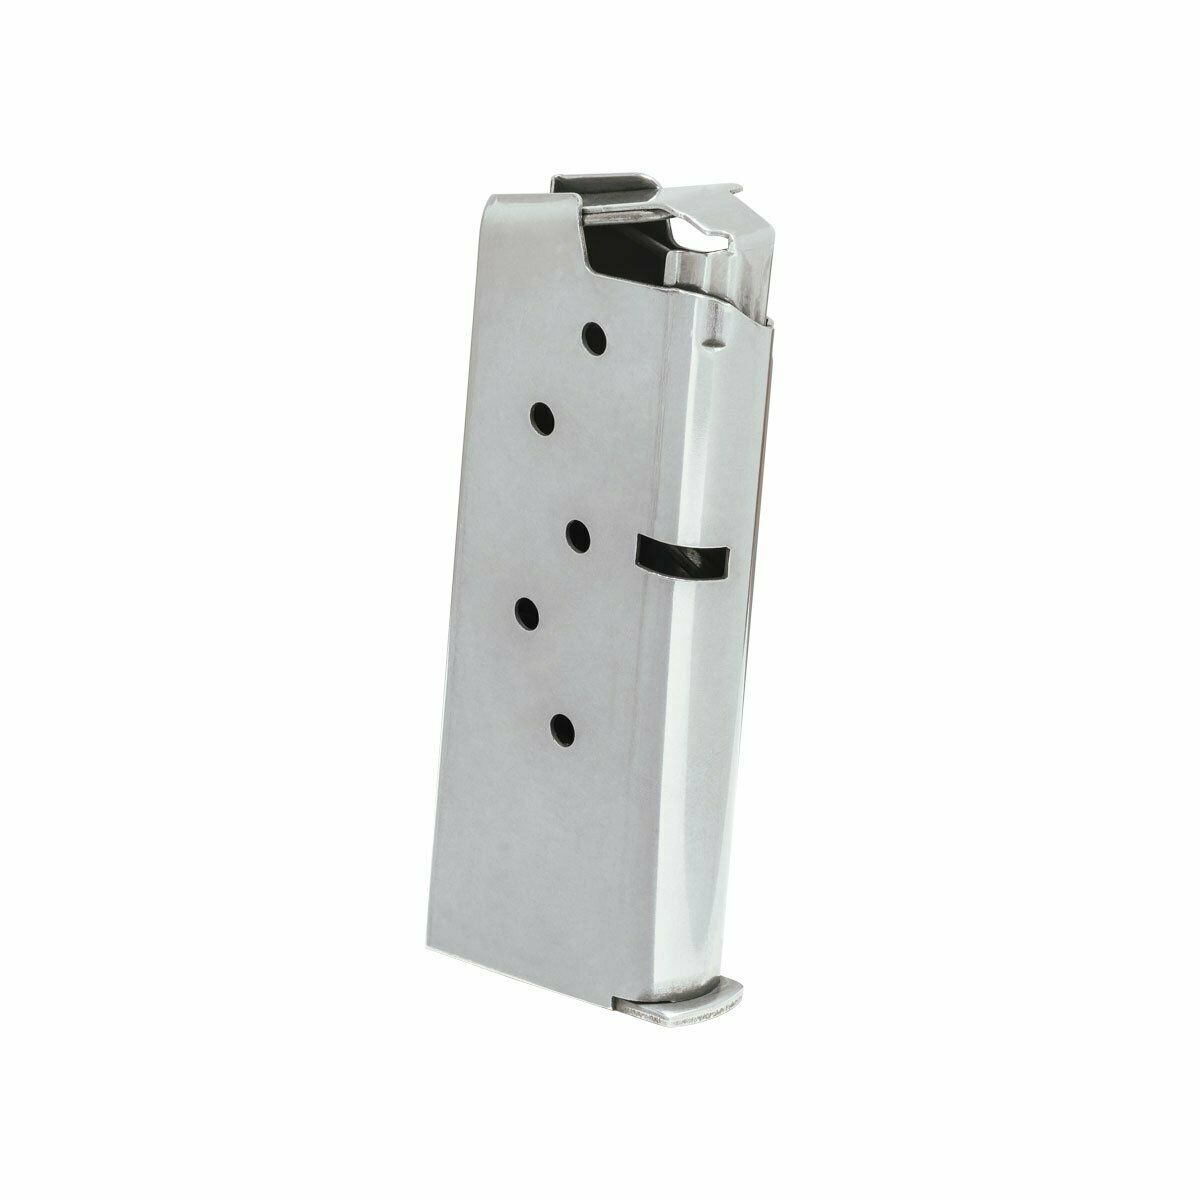 Springfield Armory Fits 911 9mm 6-round Magazine Factory PG6906 for sale online